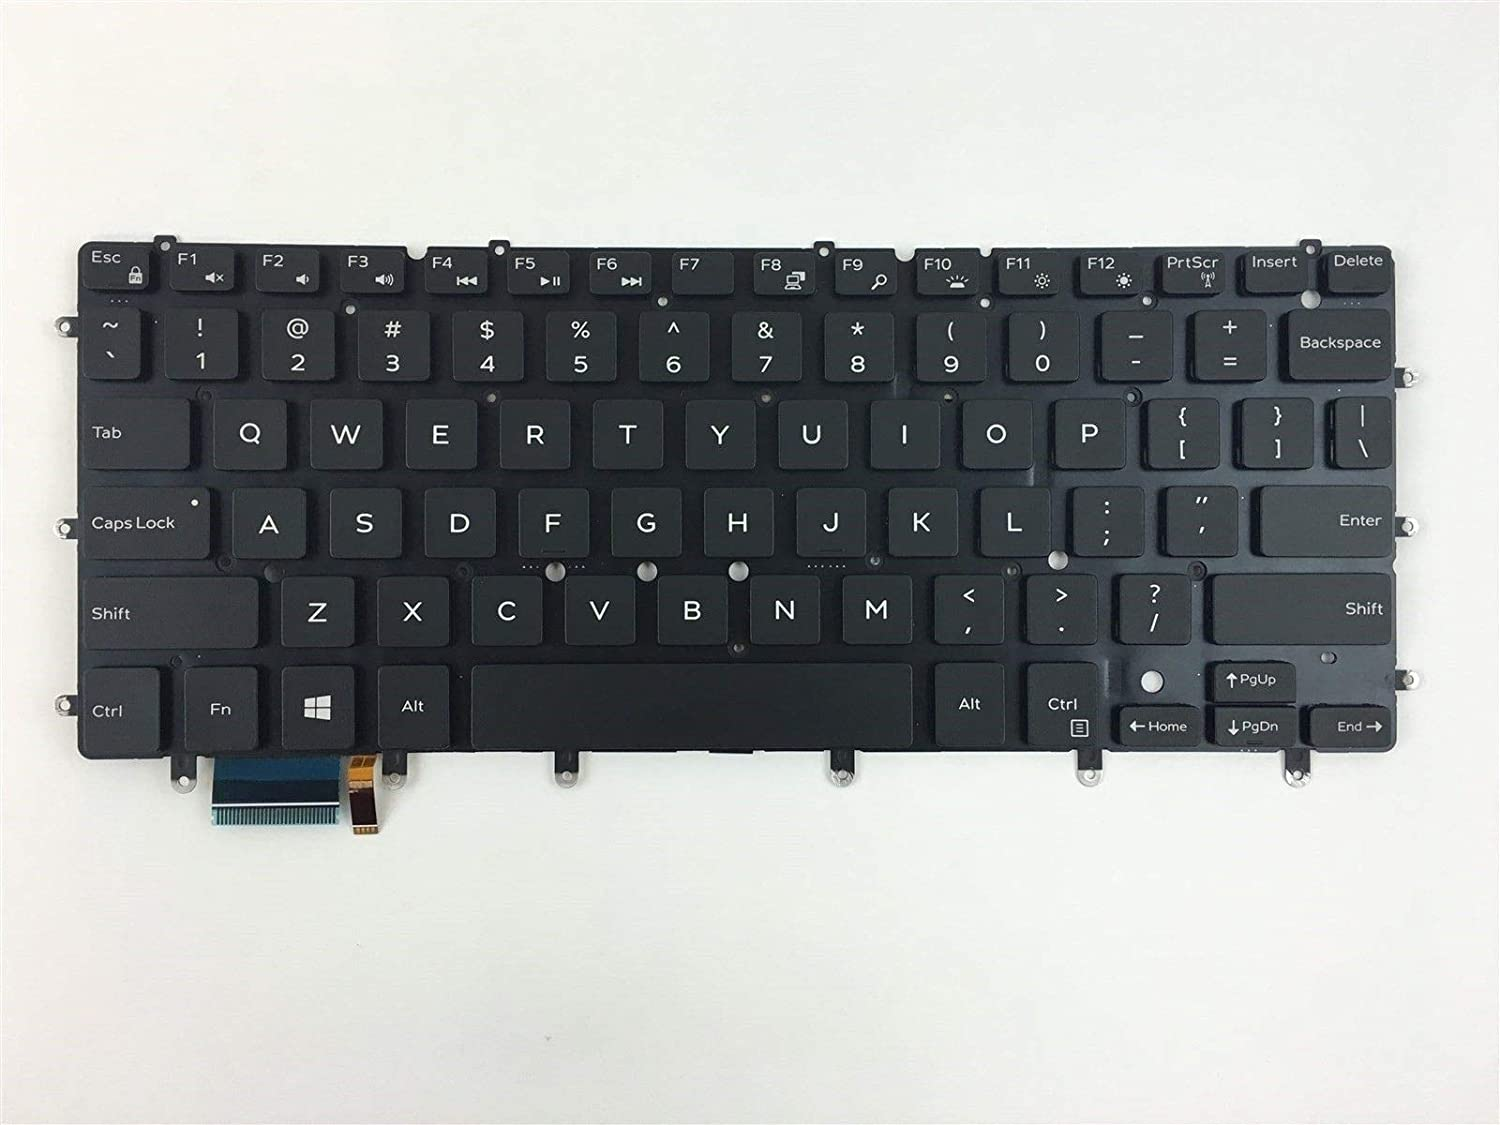 New Laptop Backlit Keyboard (Without Frame) Replacement for Dell Inspiron 13 7347 13 7348 7352 7353 7359 15 7547 15 7548 XPS 13 9343 9350 0DKDXH DKDXH NSK-LS0BW 01 US Layout Black Color